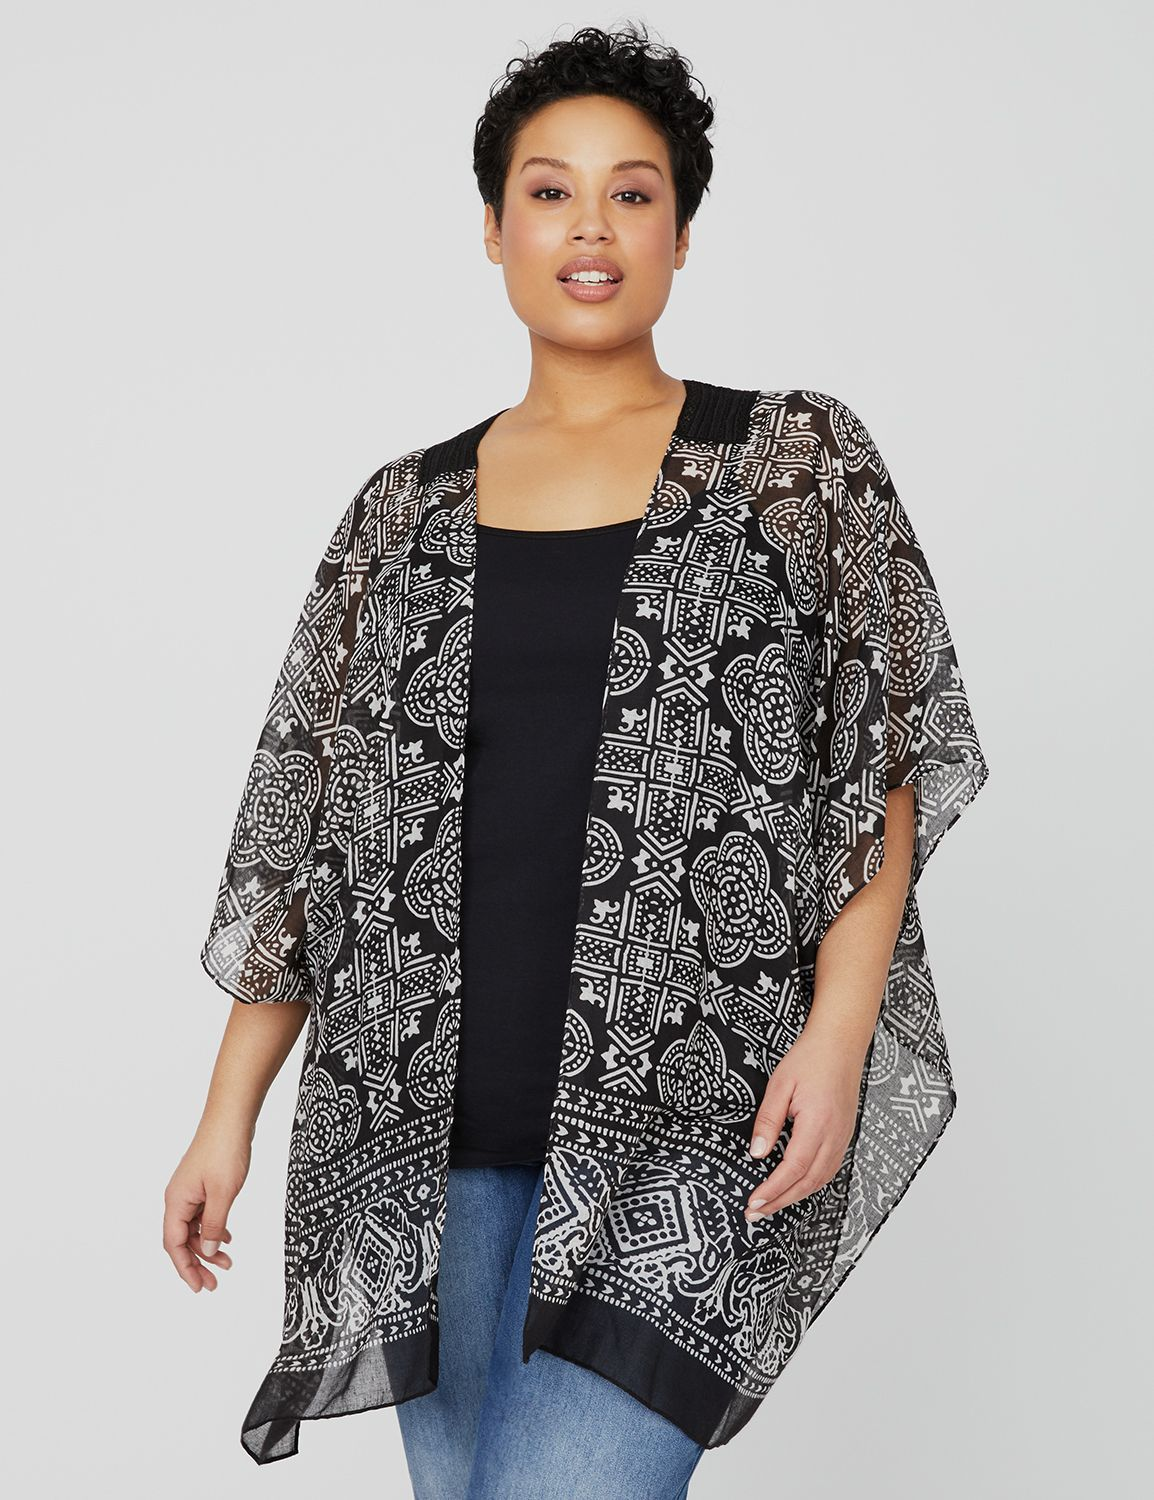 d2ff8d625d6 Shop for a Lakeside Resort Overpiece at Catherines.com. Read reviews and browse  our wide selection to match any budget or occasion.